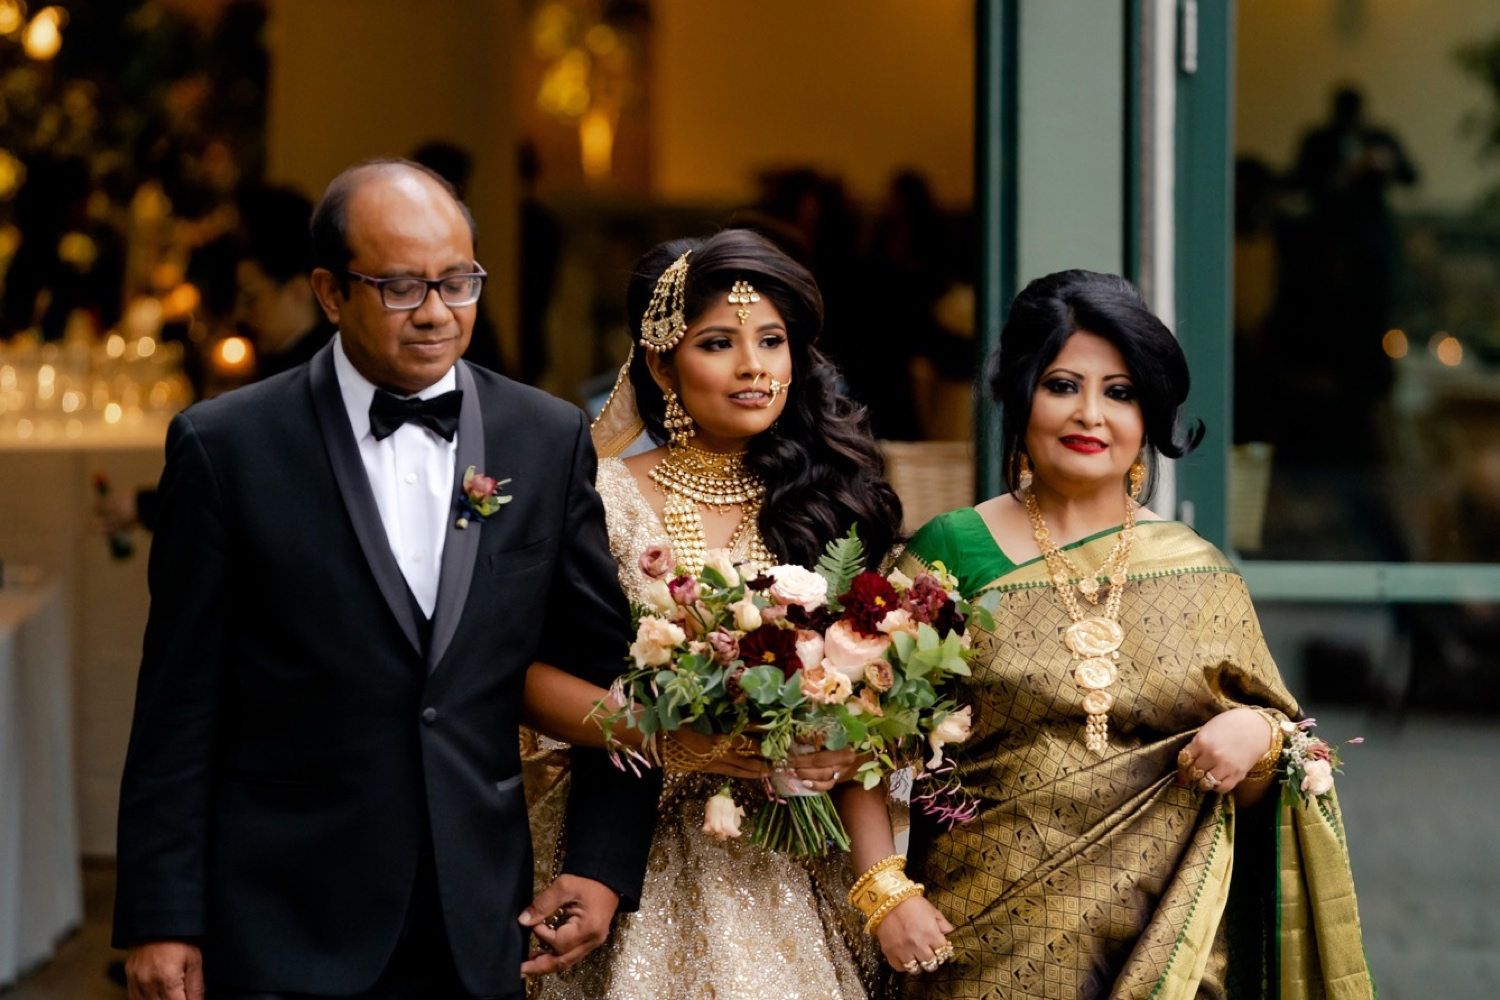 A bride and her parent coming to the wedding ceremony at the Tappan Hill Mansion.